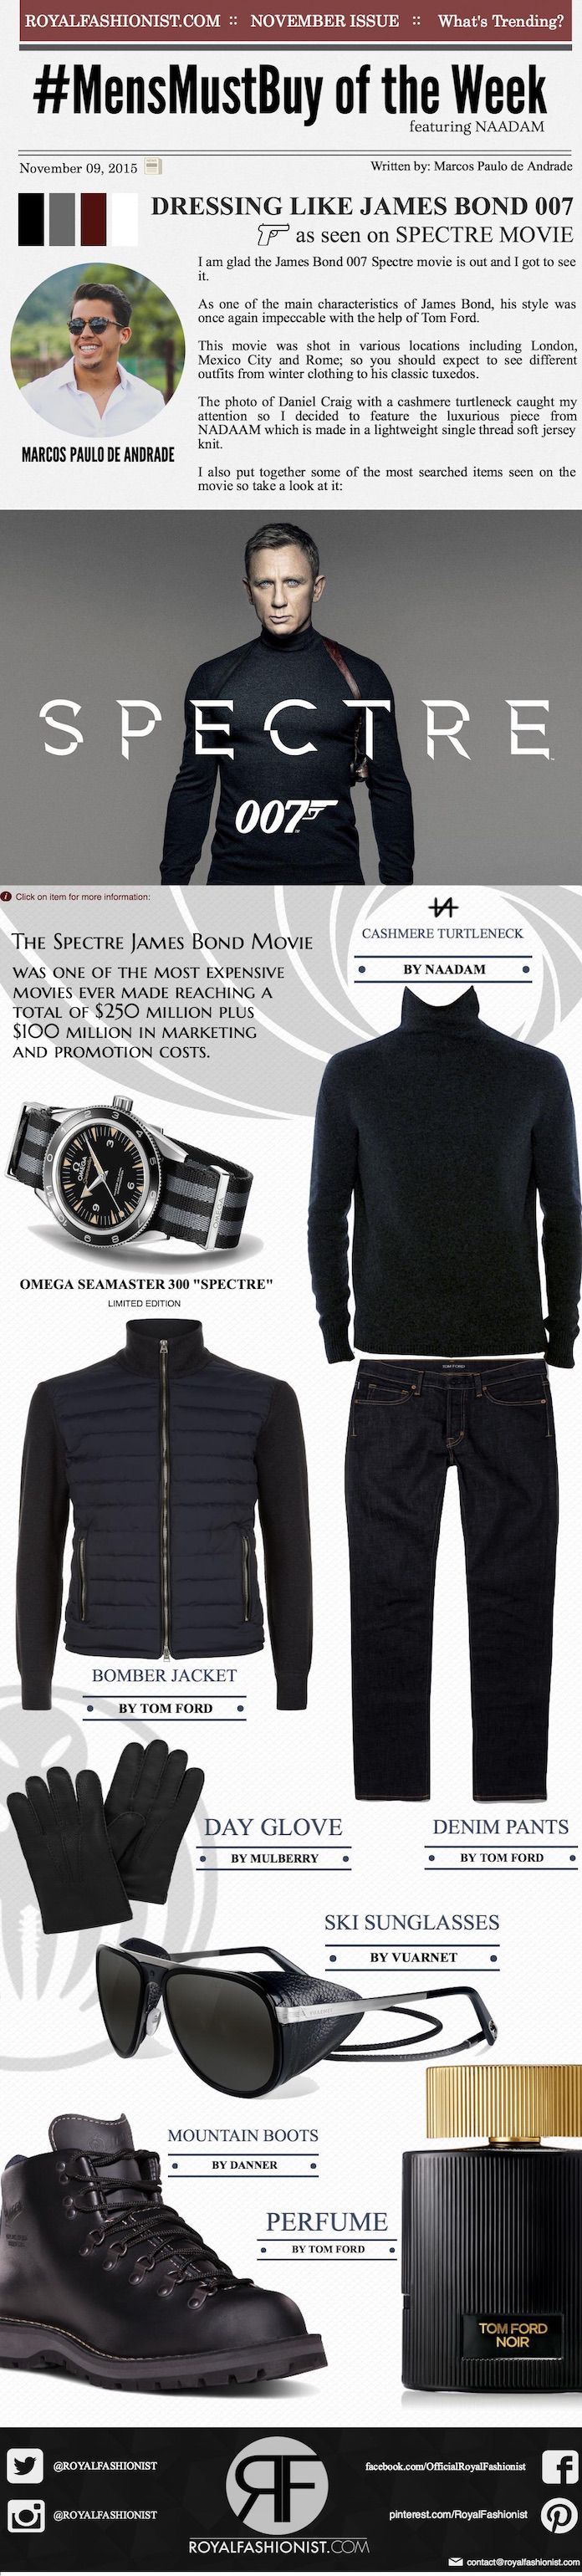 Copy James Bond's Turtleneck Outfit From Spectre Movie | Royal Fashionist